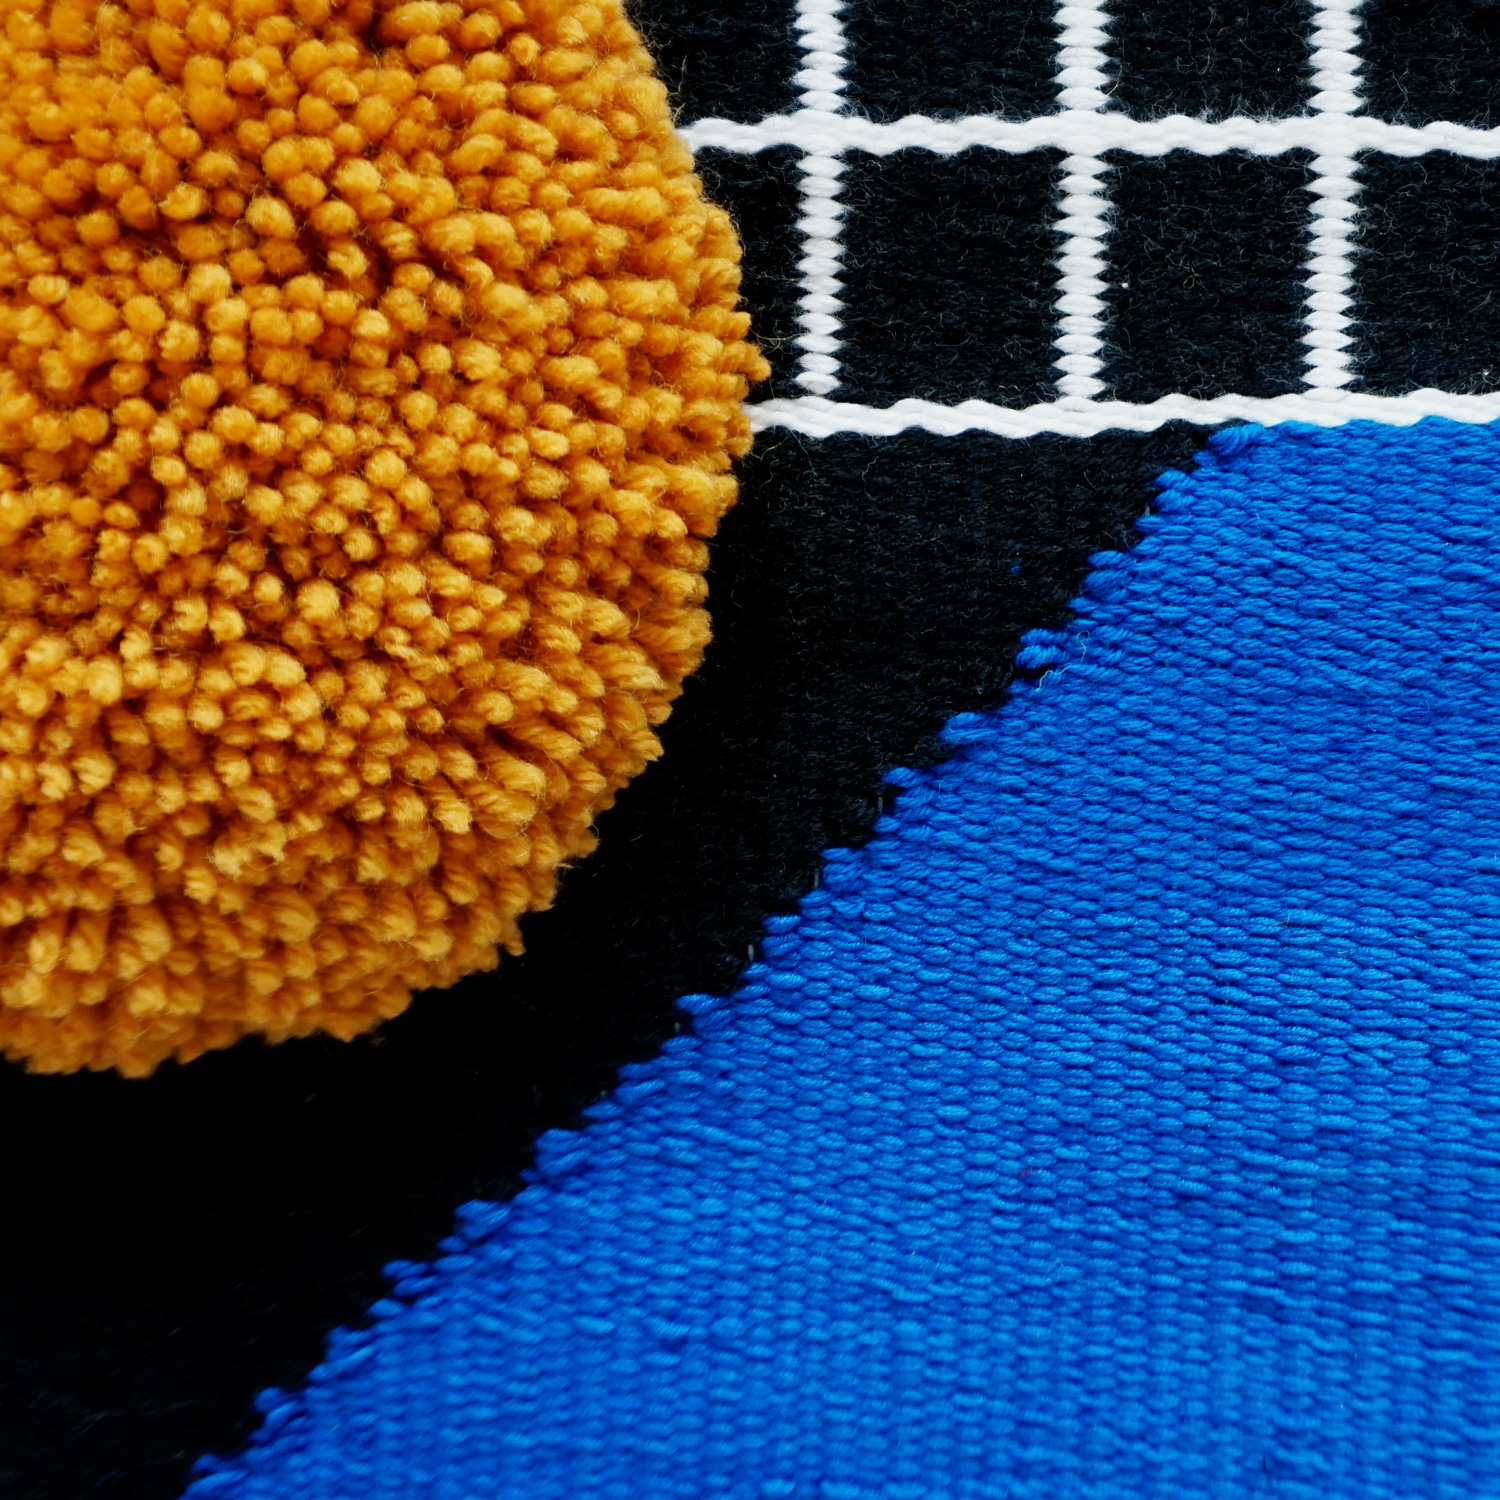 A bold geometric statement piece, featuring a black and white grid, intersected with a bright cobalt blue triangle and a fluffy mustard circle.